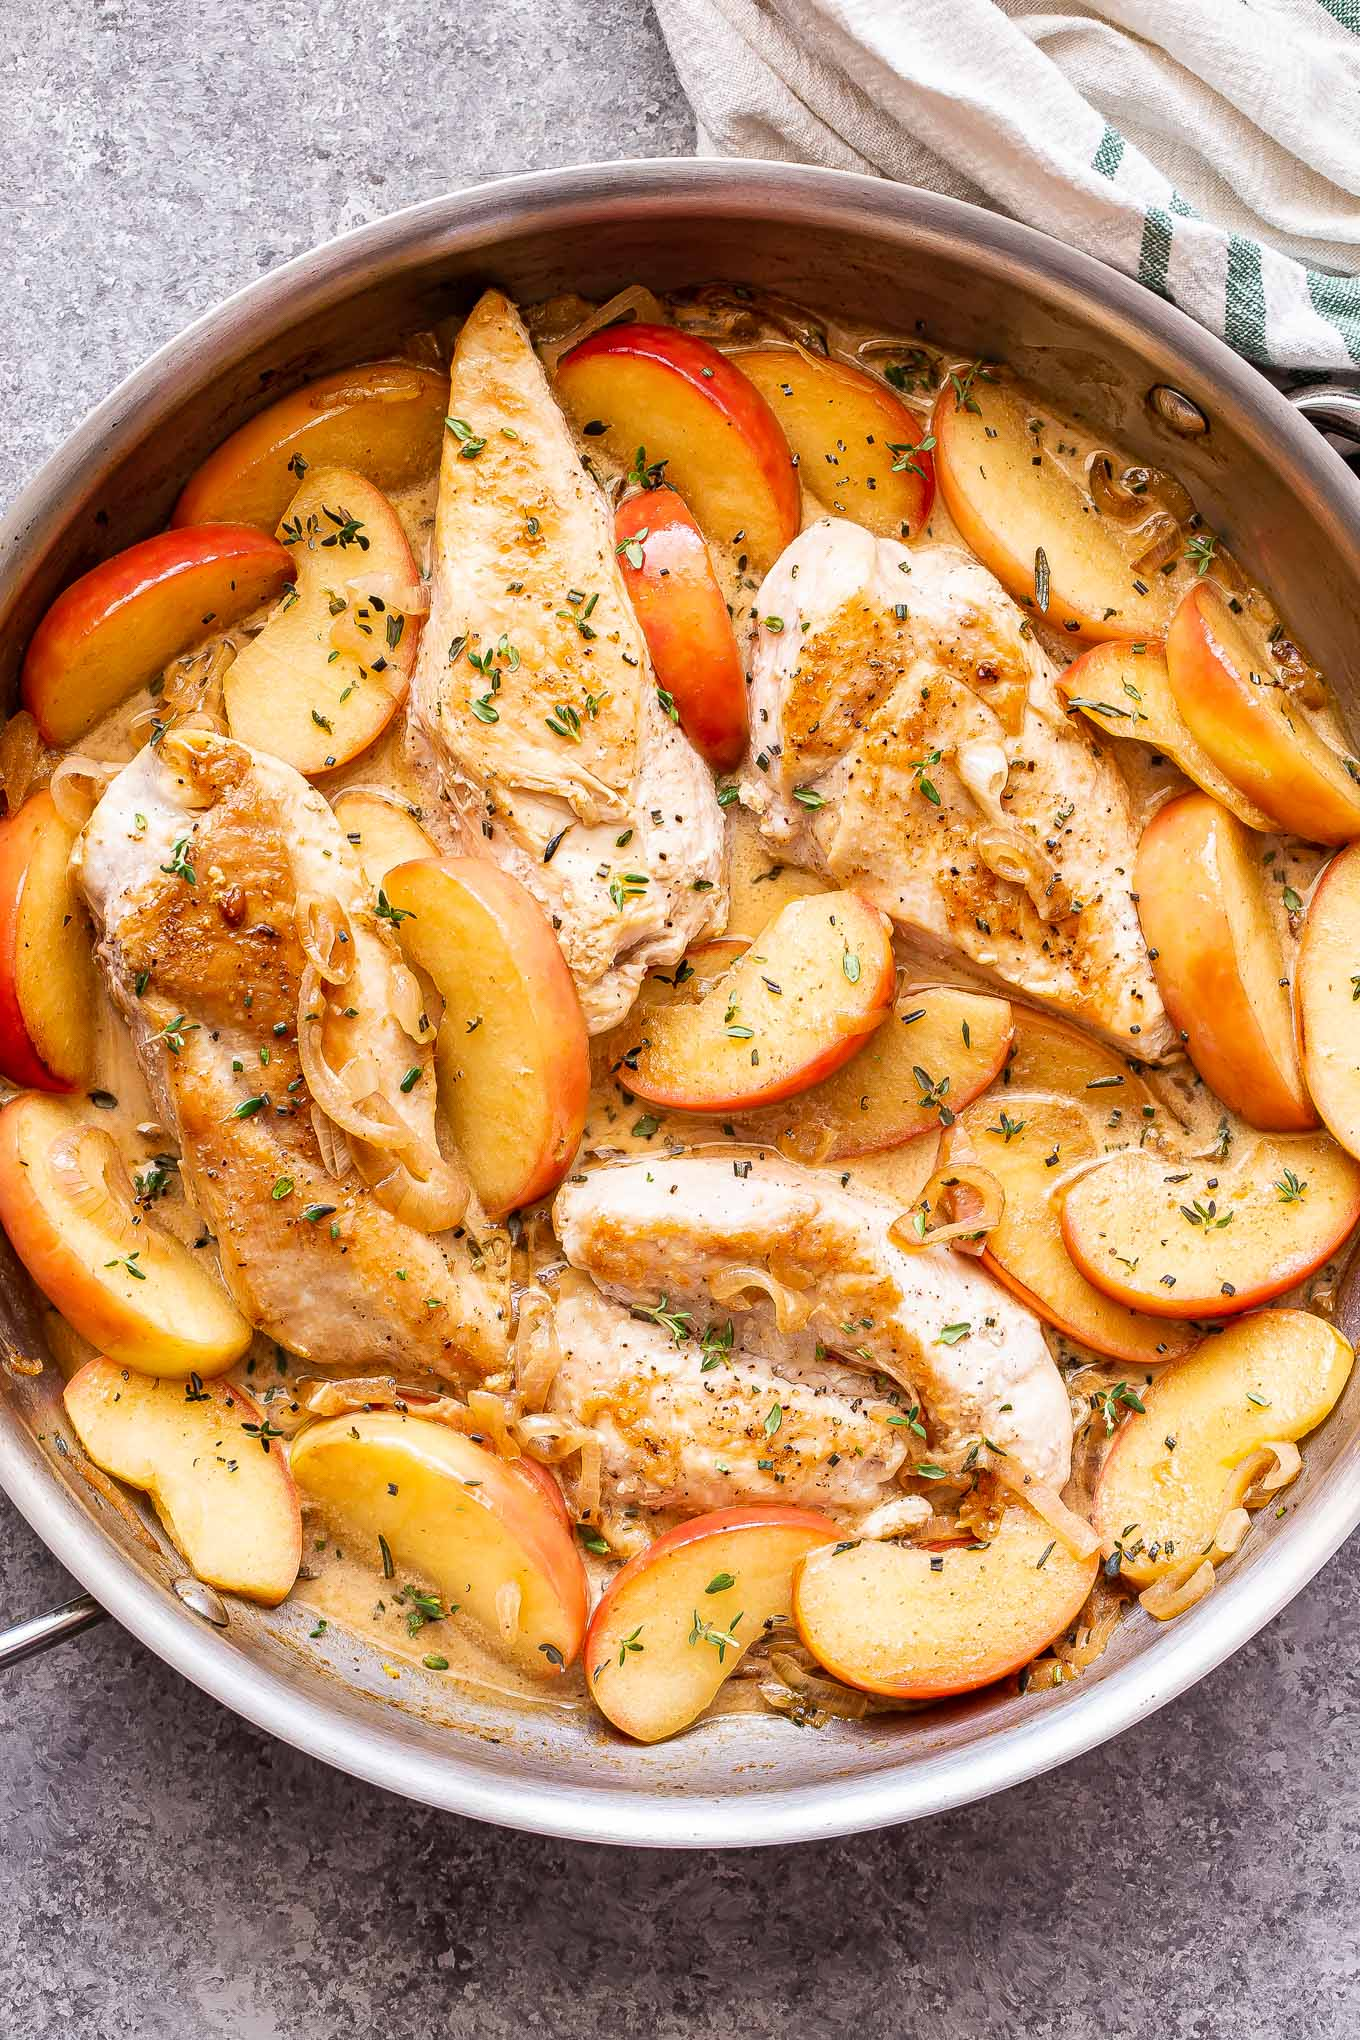 stainless steel skillet with Apple cider chicken in it.